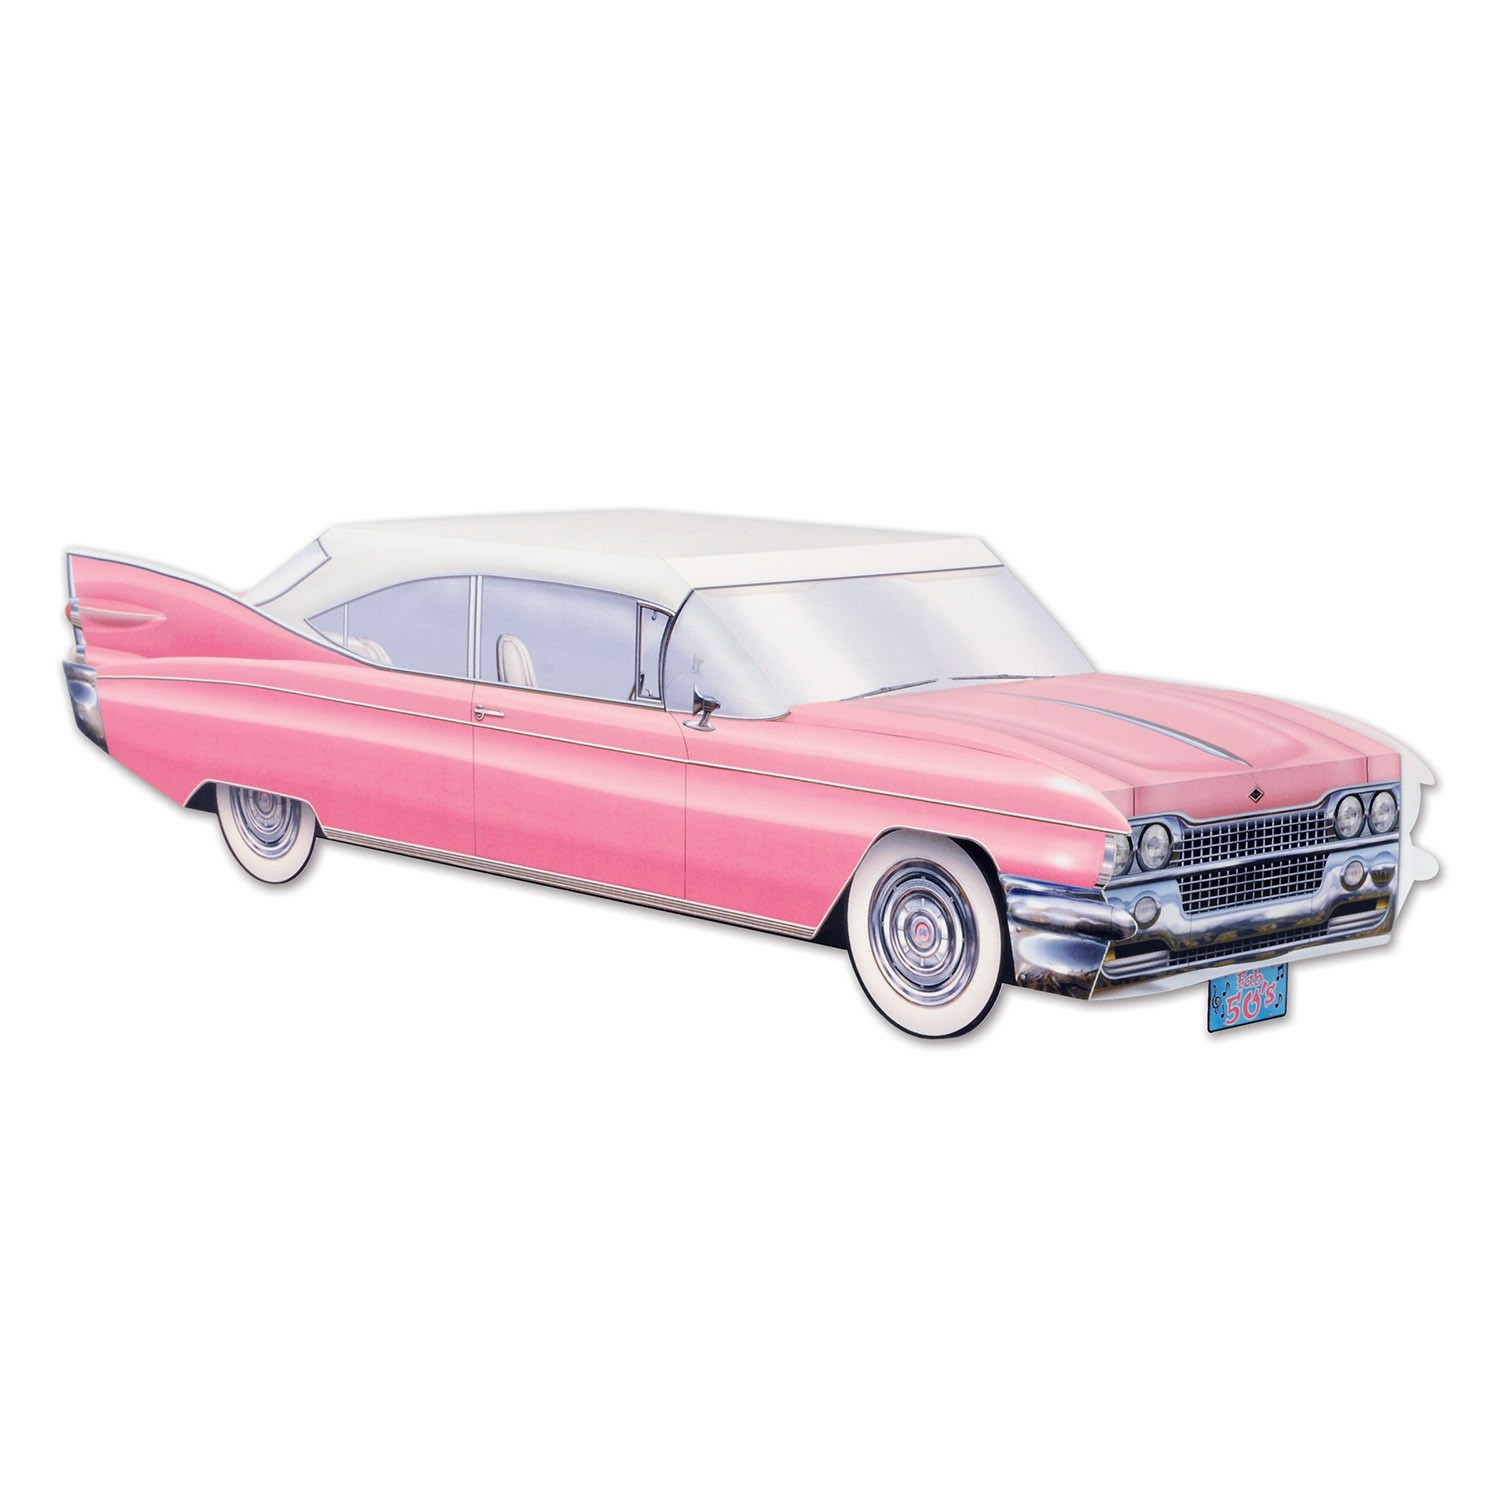 Image of 1950's Chevy Cruisin' Car Table Centrepiece Decoration